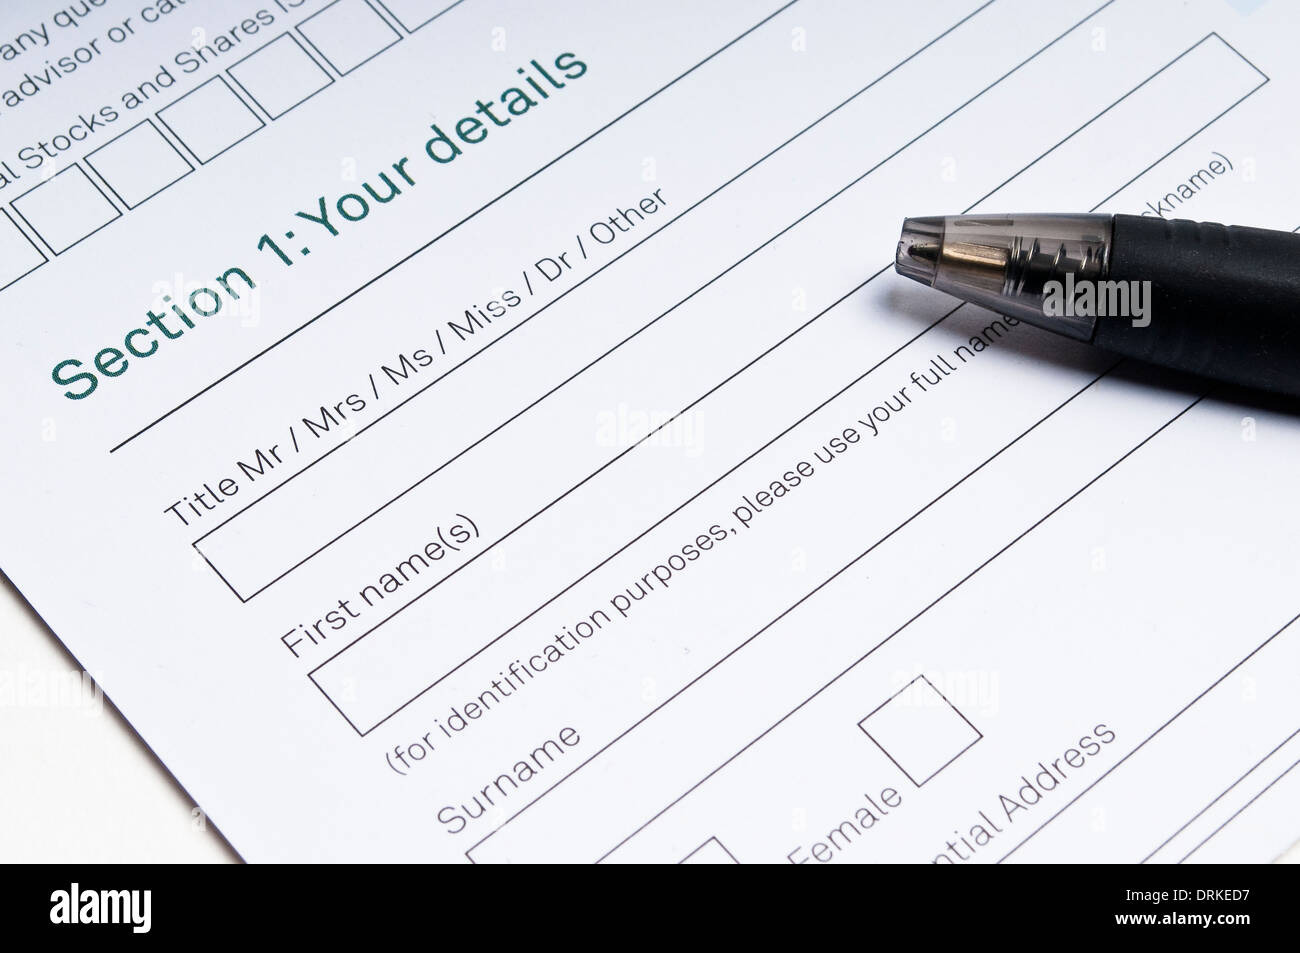 Application form to fill in with your details and pen - Stock Image